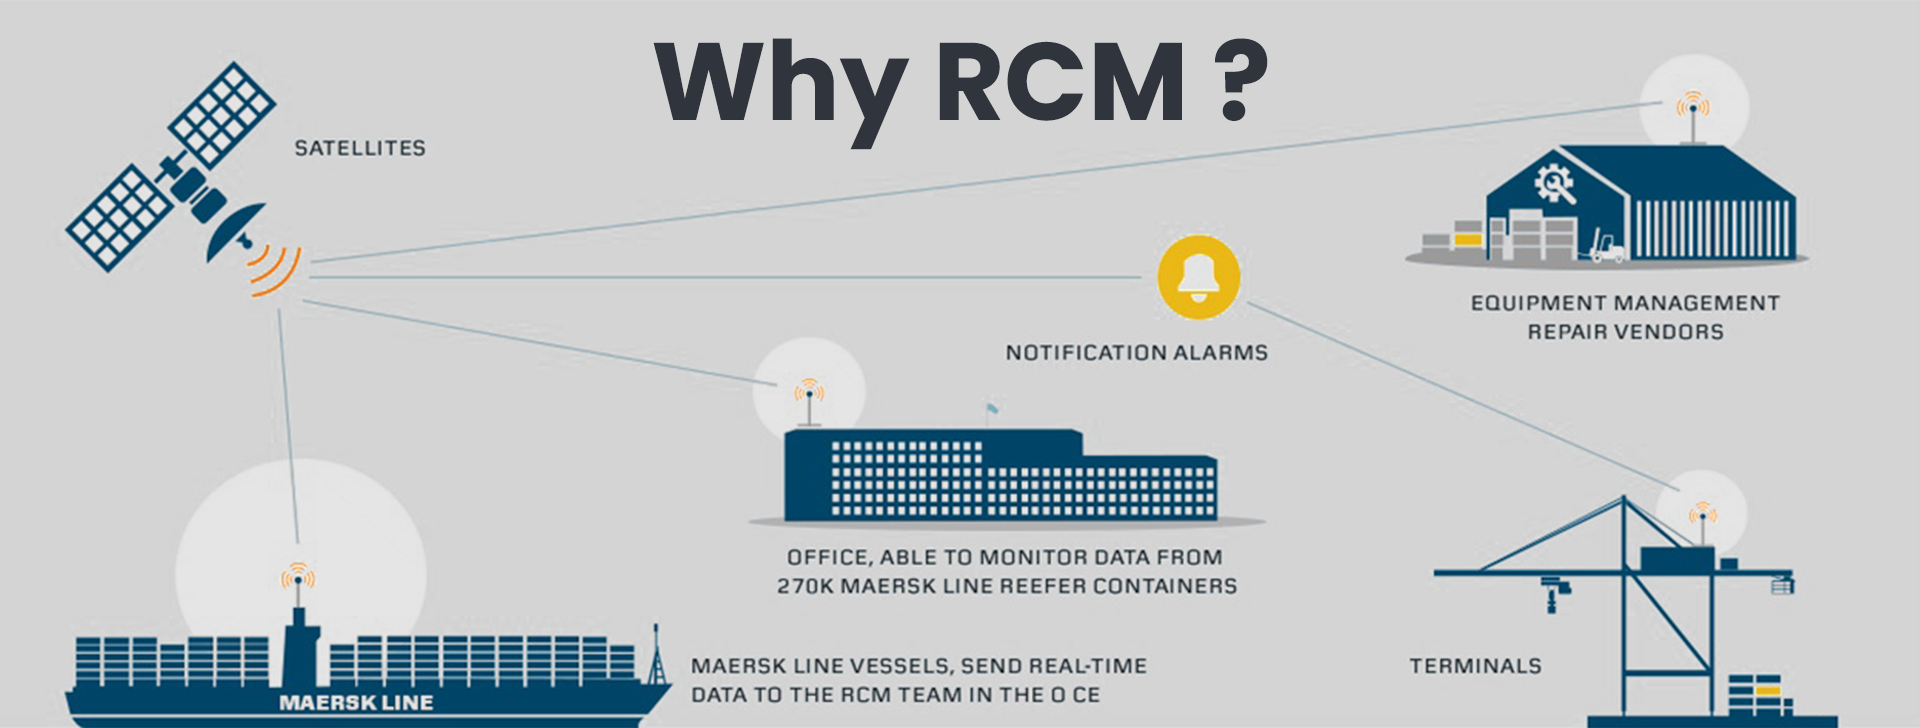 Why Remote Container Management(RCM) is required?